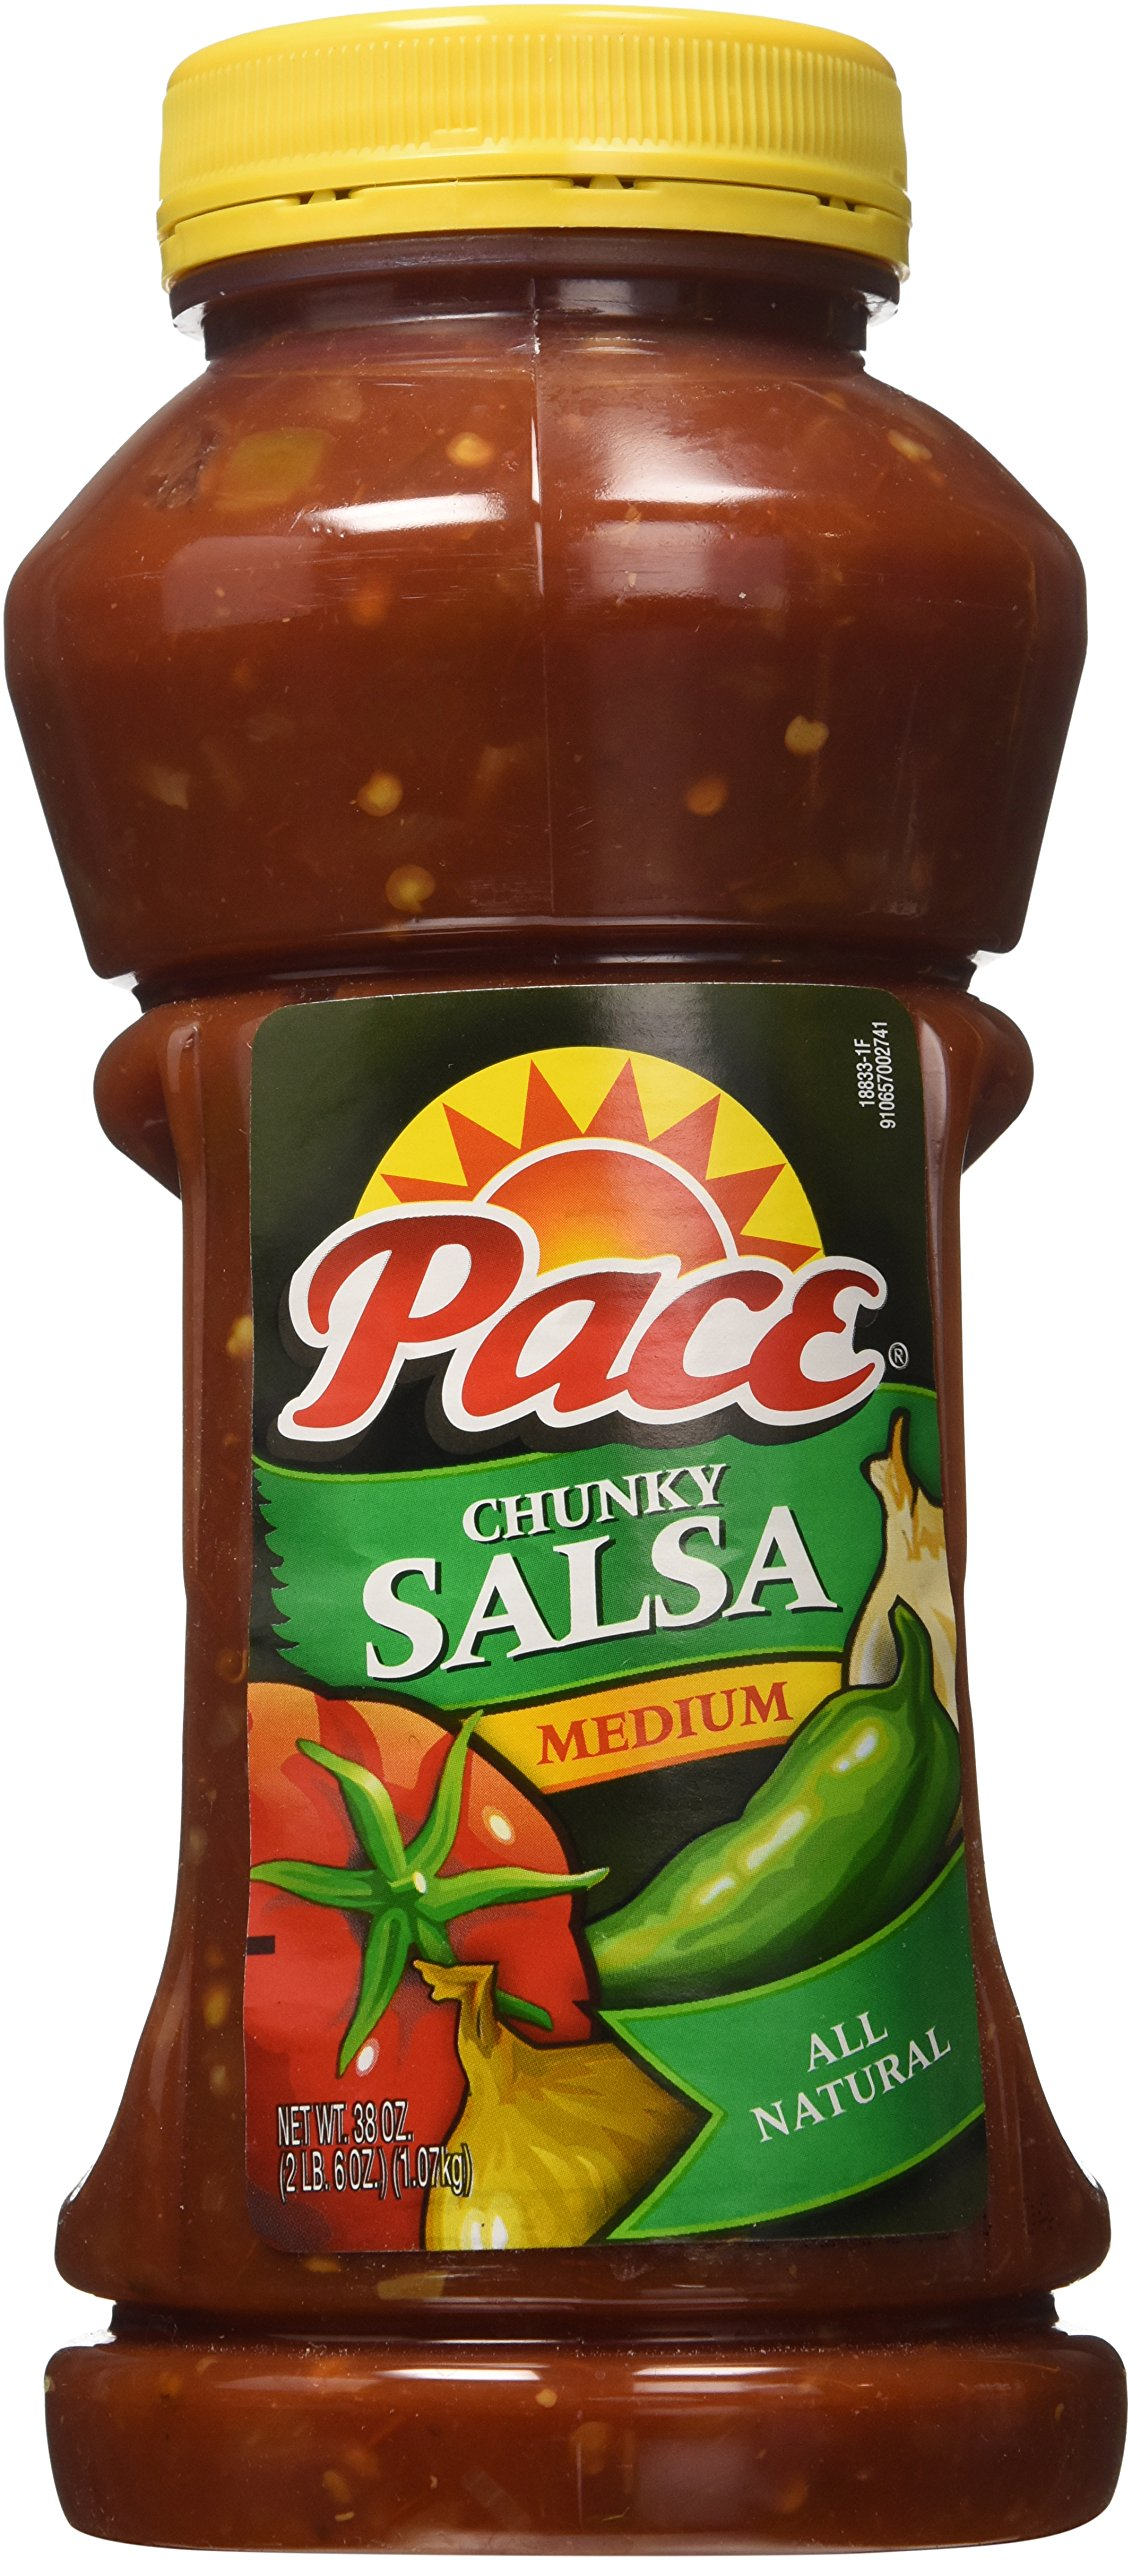 Pace Chunky Salsa - Medium - 2/38 oz. by Pace